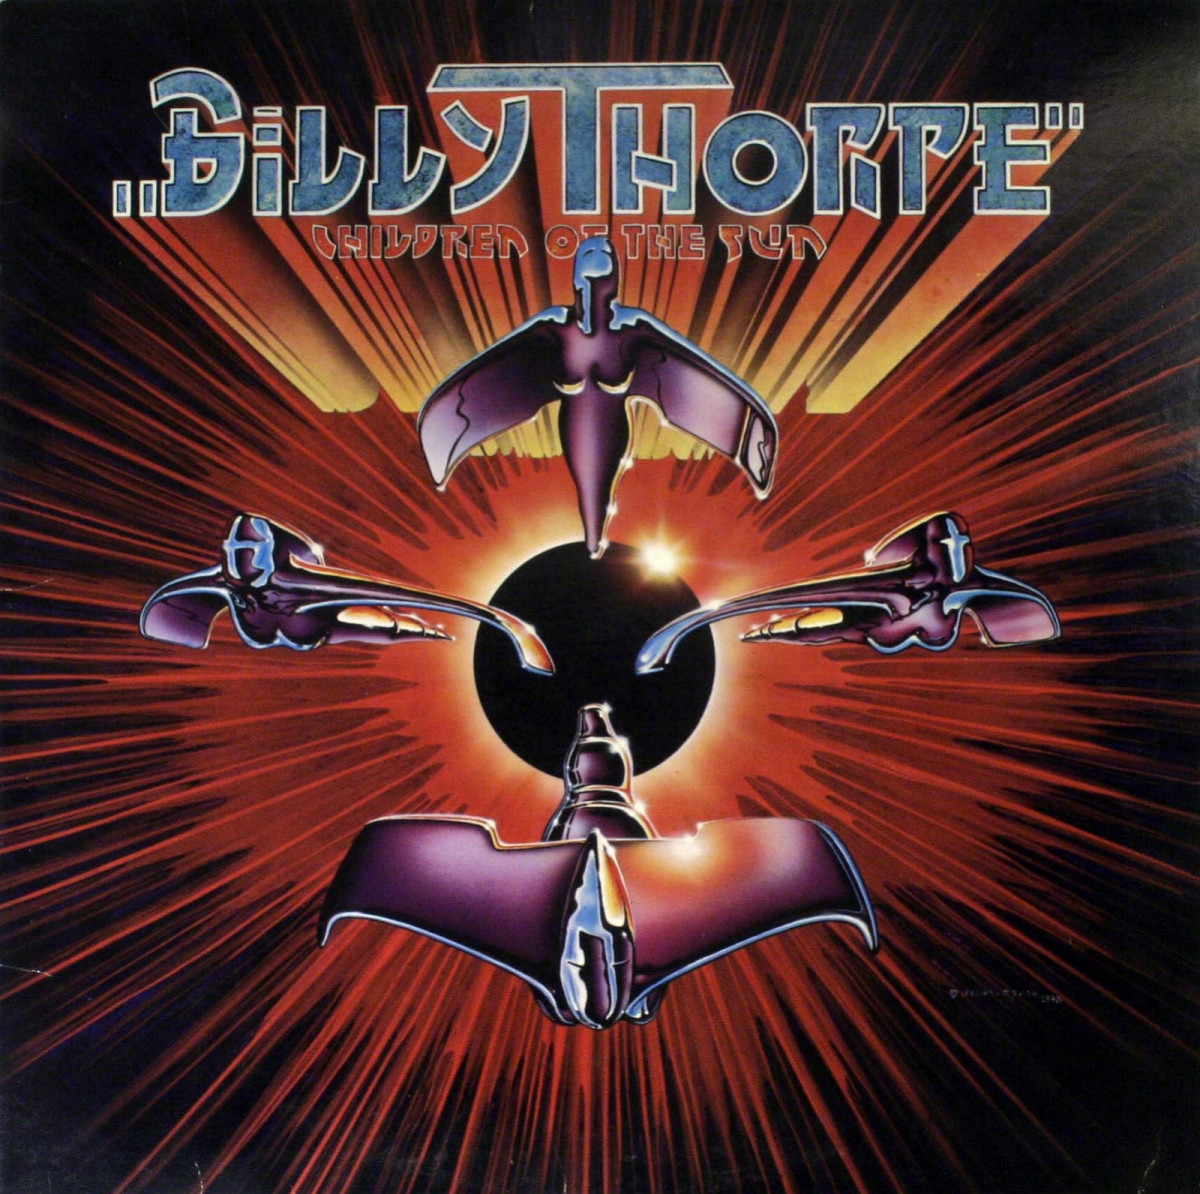 """Billy Thorpe """"Children Of The Sun"""" Capricorn Records CPN-0221 12"""" LP Vinyl Record US Pressing (1979)  Album Cover Art by Alton Kelley & Stanley Mouse"""